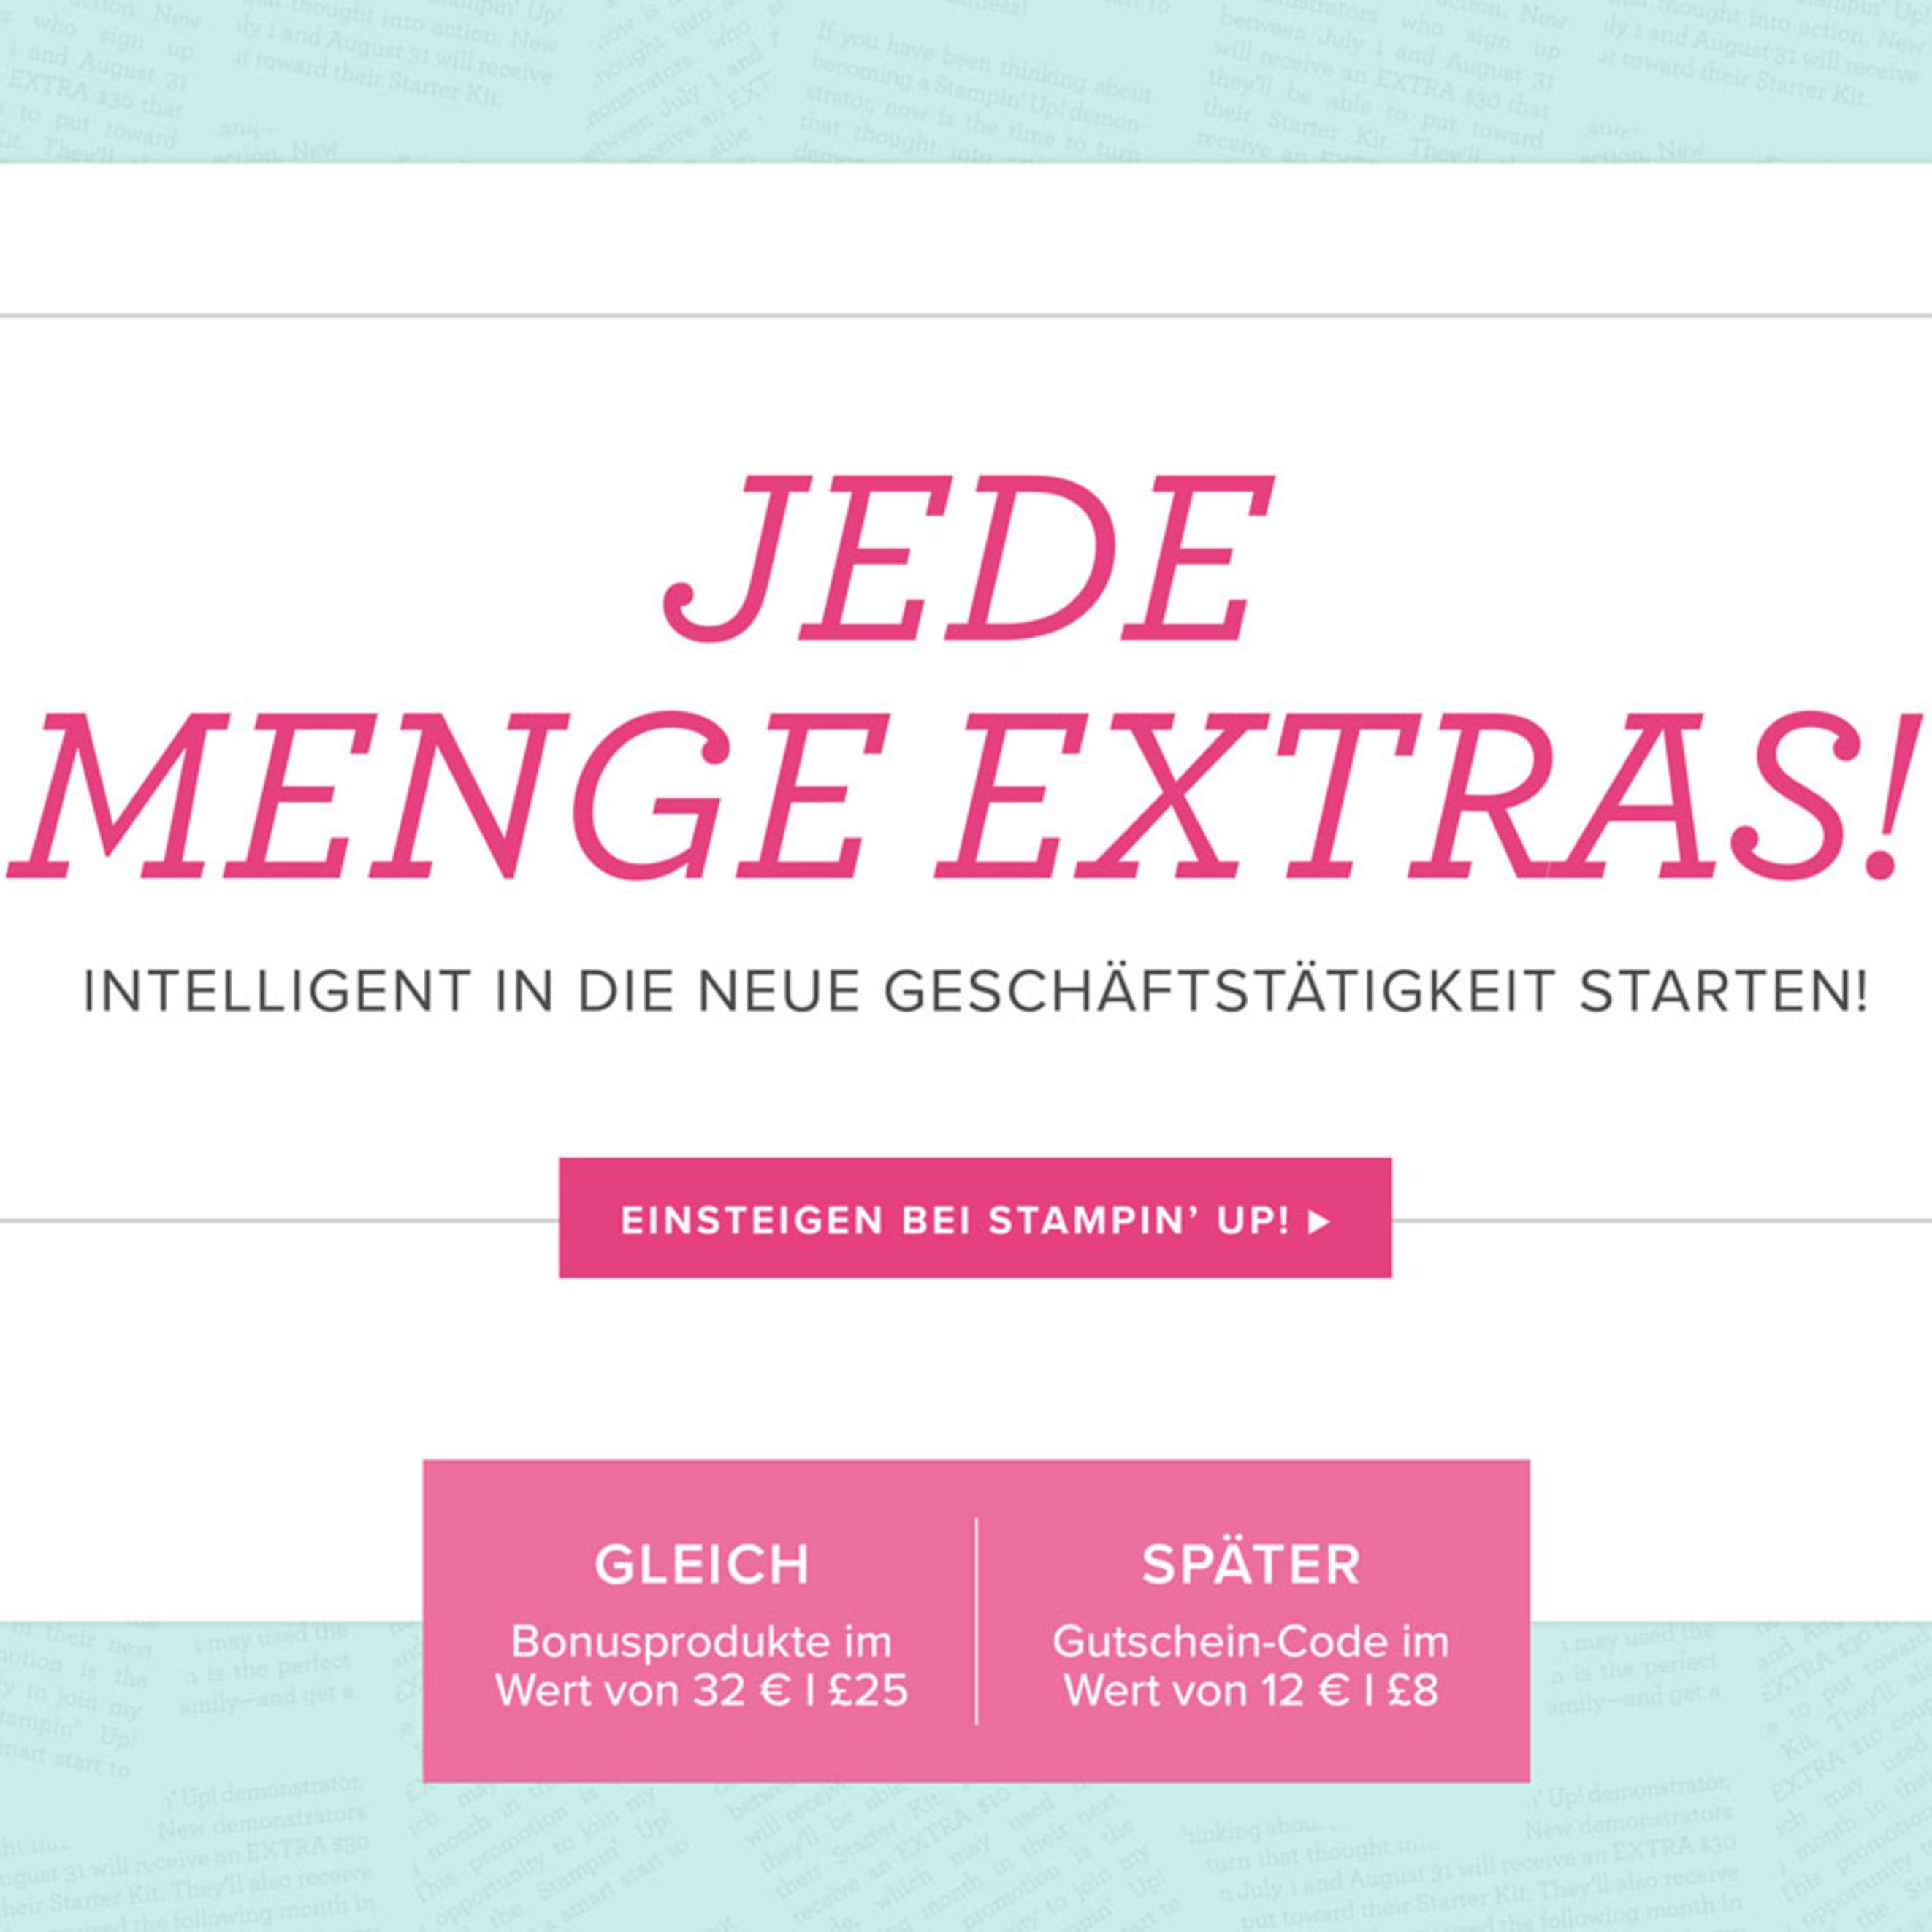 Jede-menge-extras-SQ